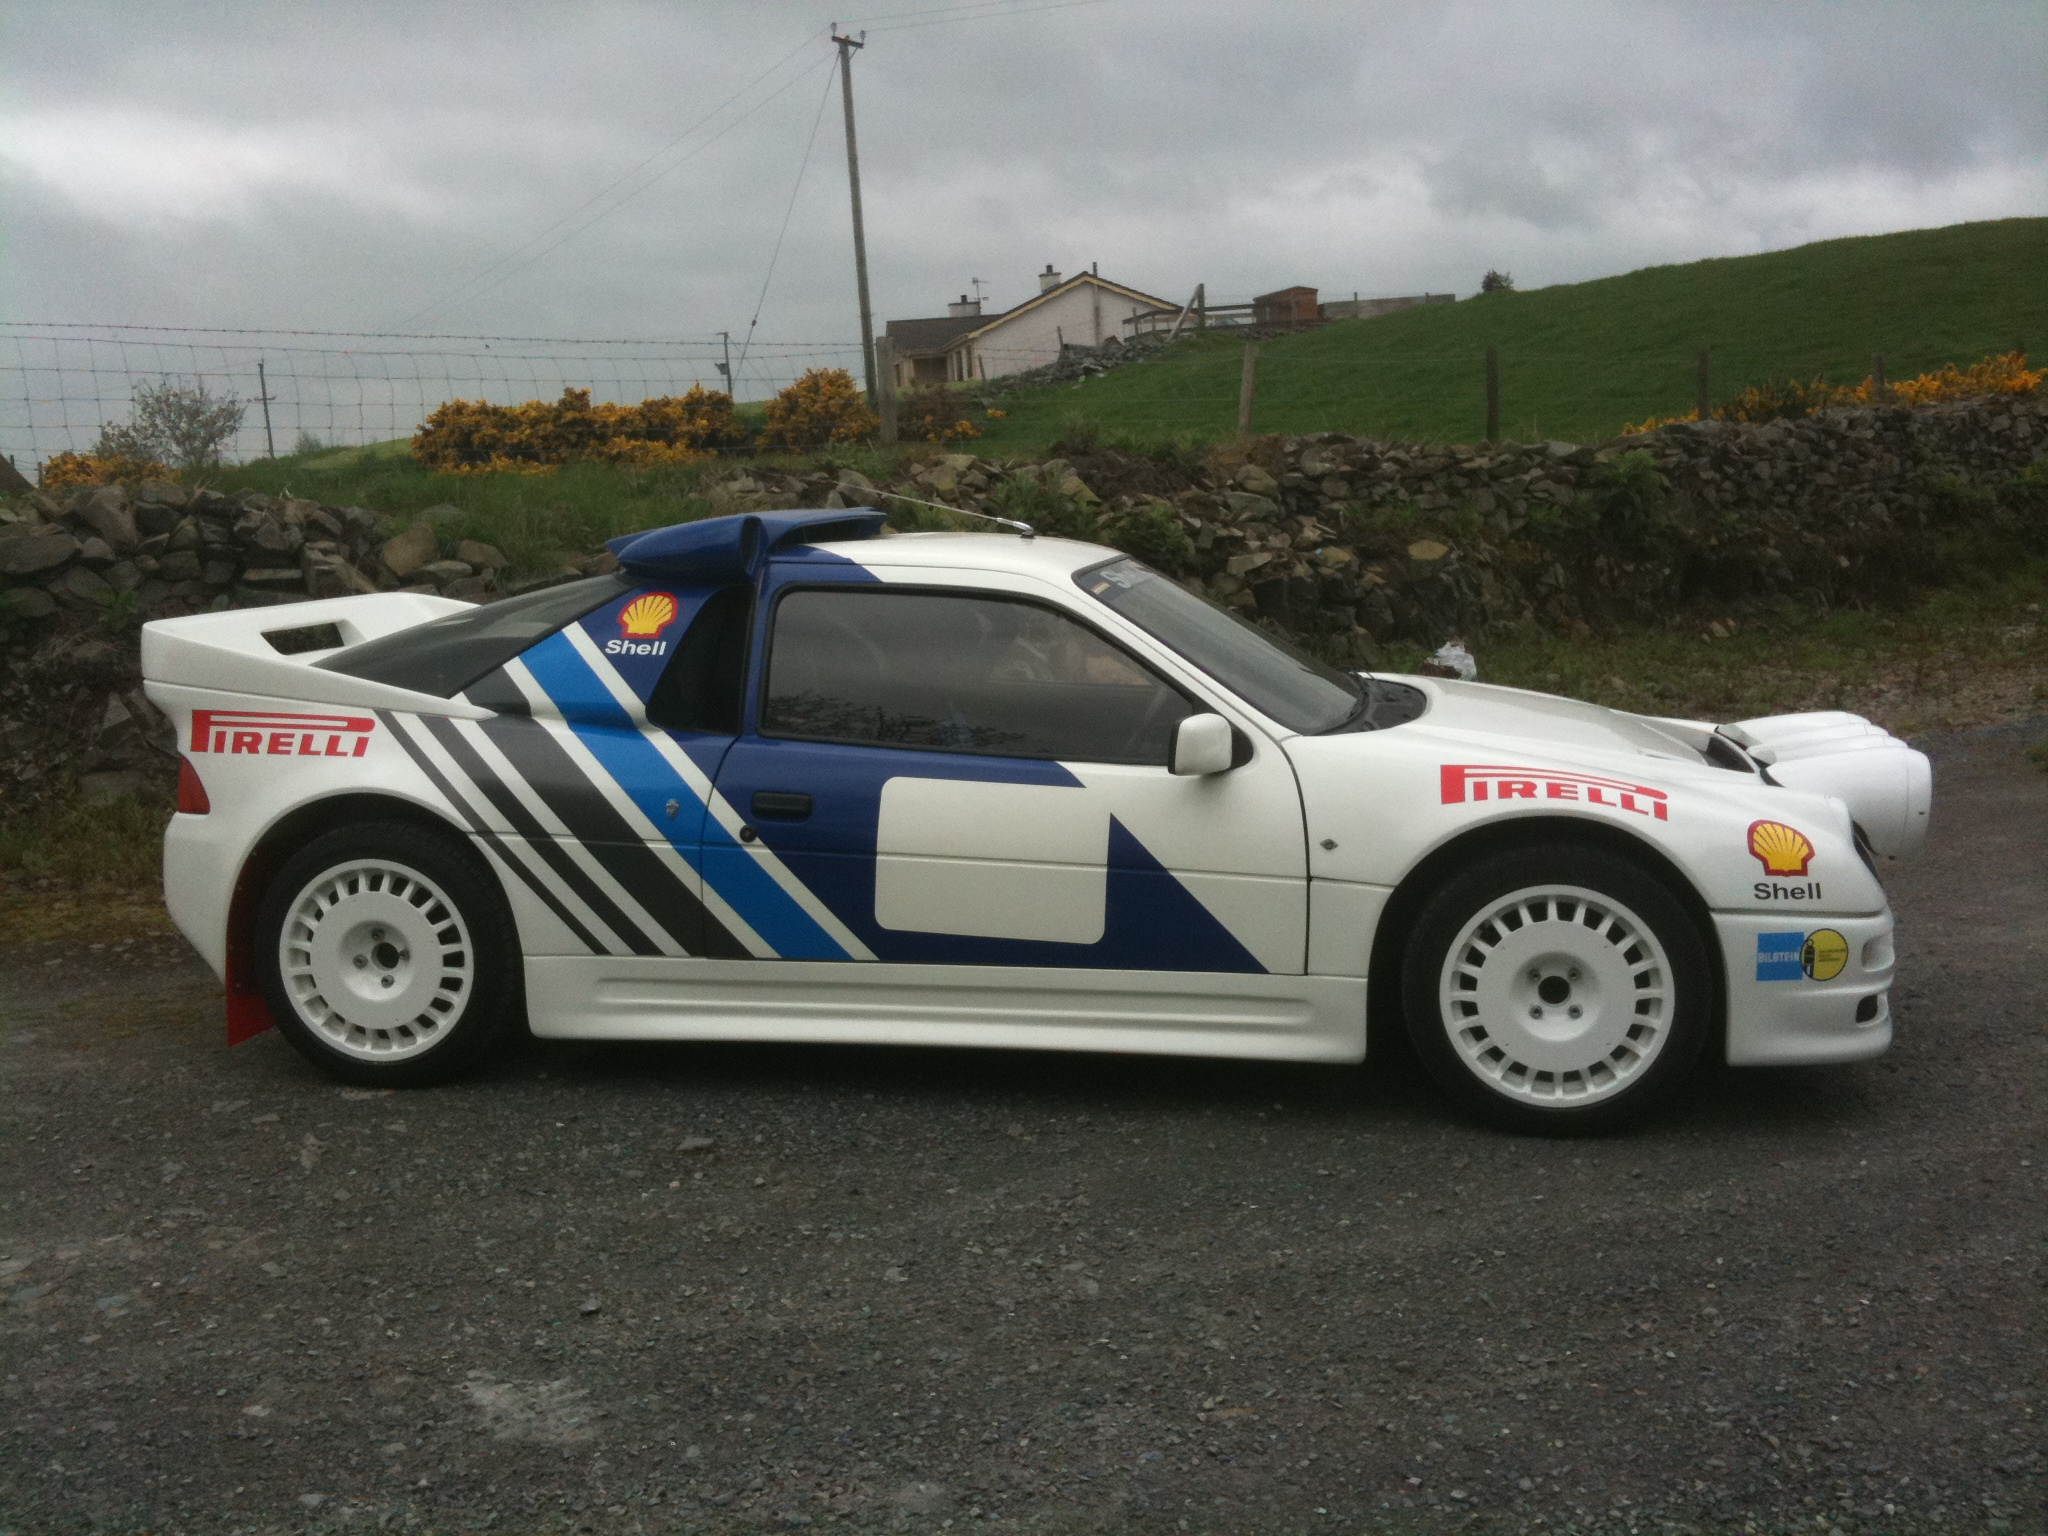 This is my RS200 replica  mid-engine cosworth power  coilovers all round . & My Ford RS200 replica  with rally livery markmcfarlin.com